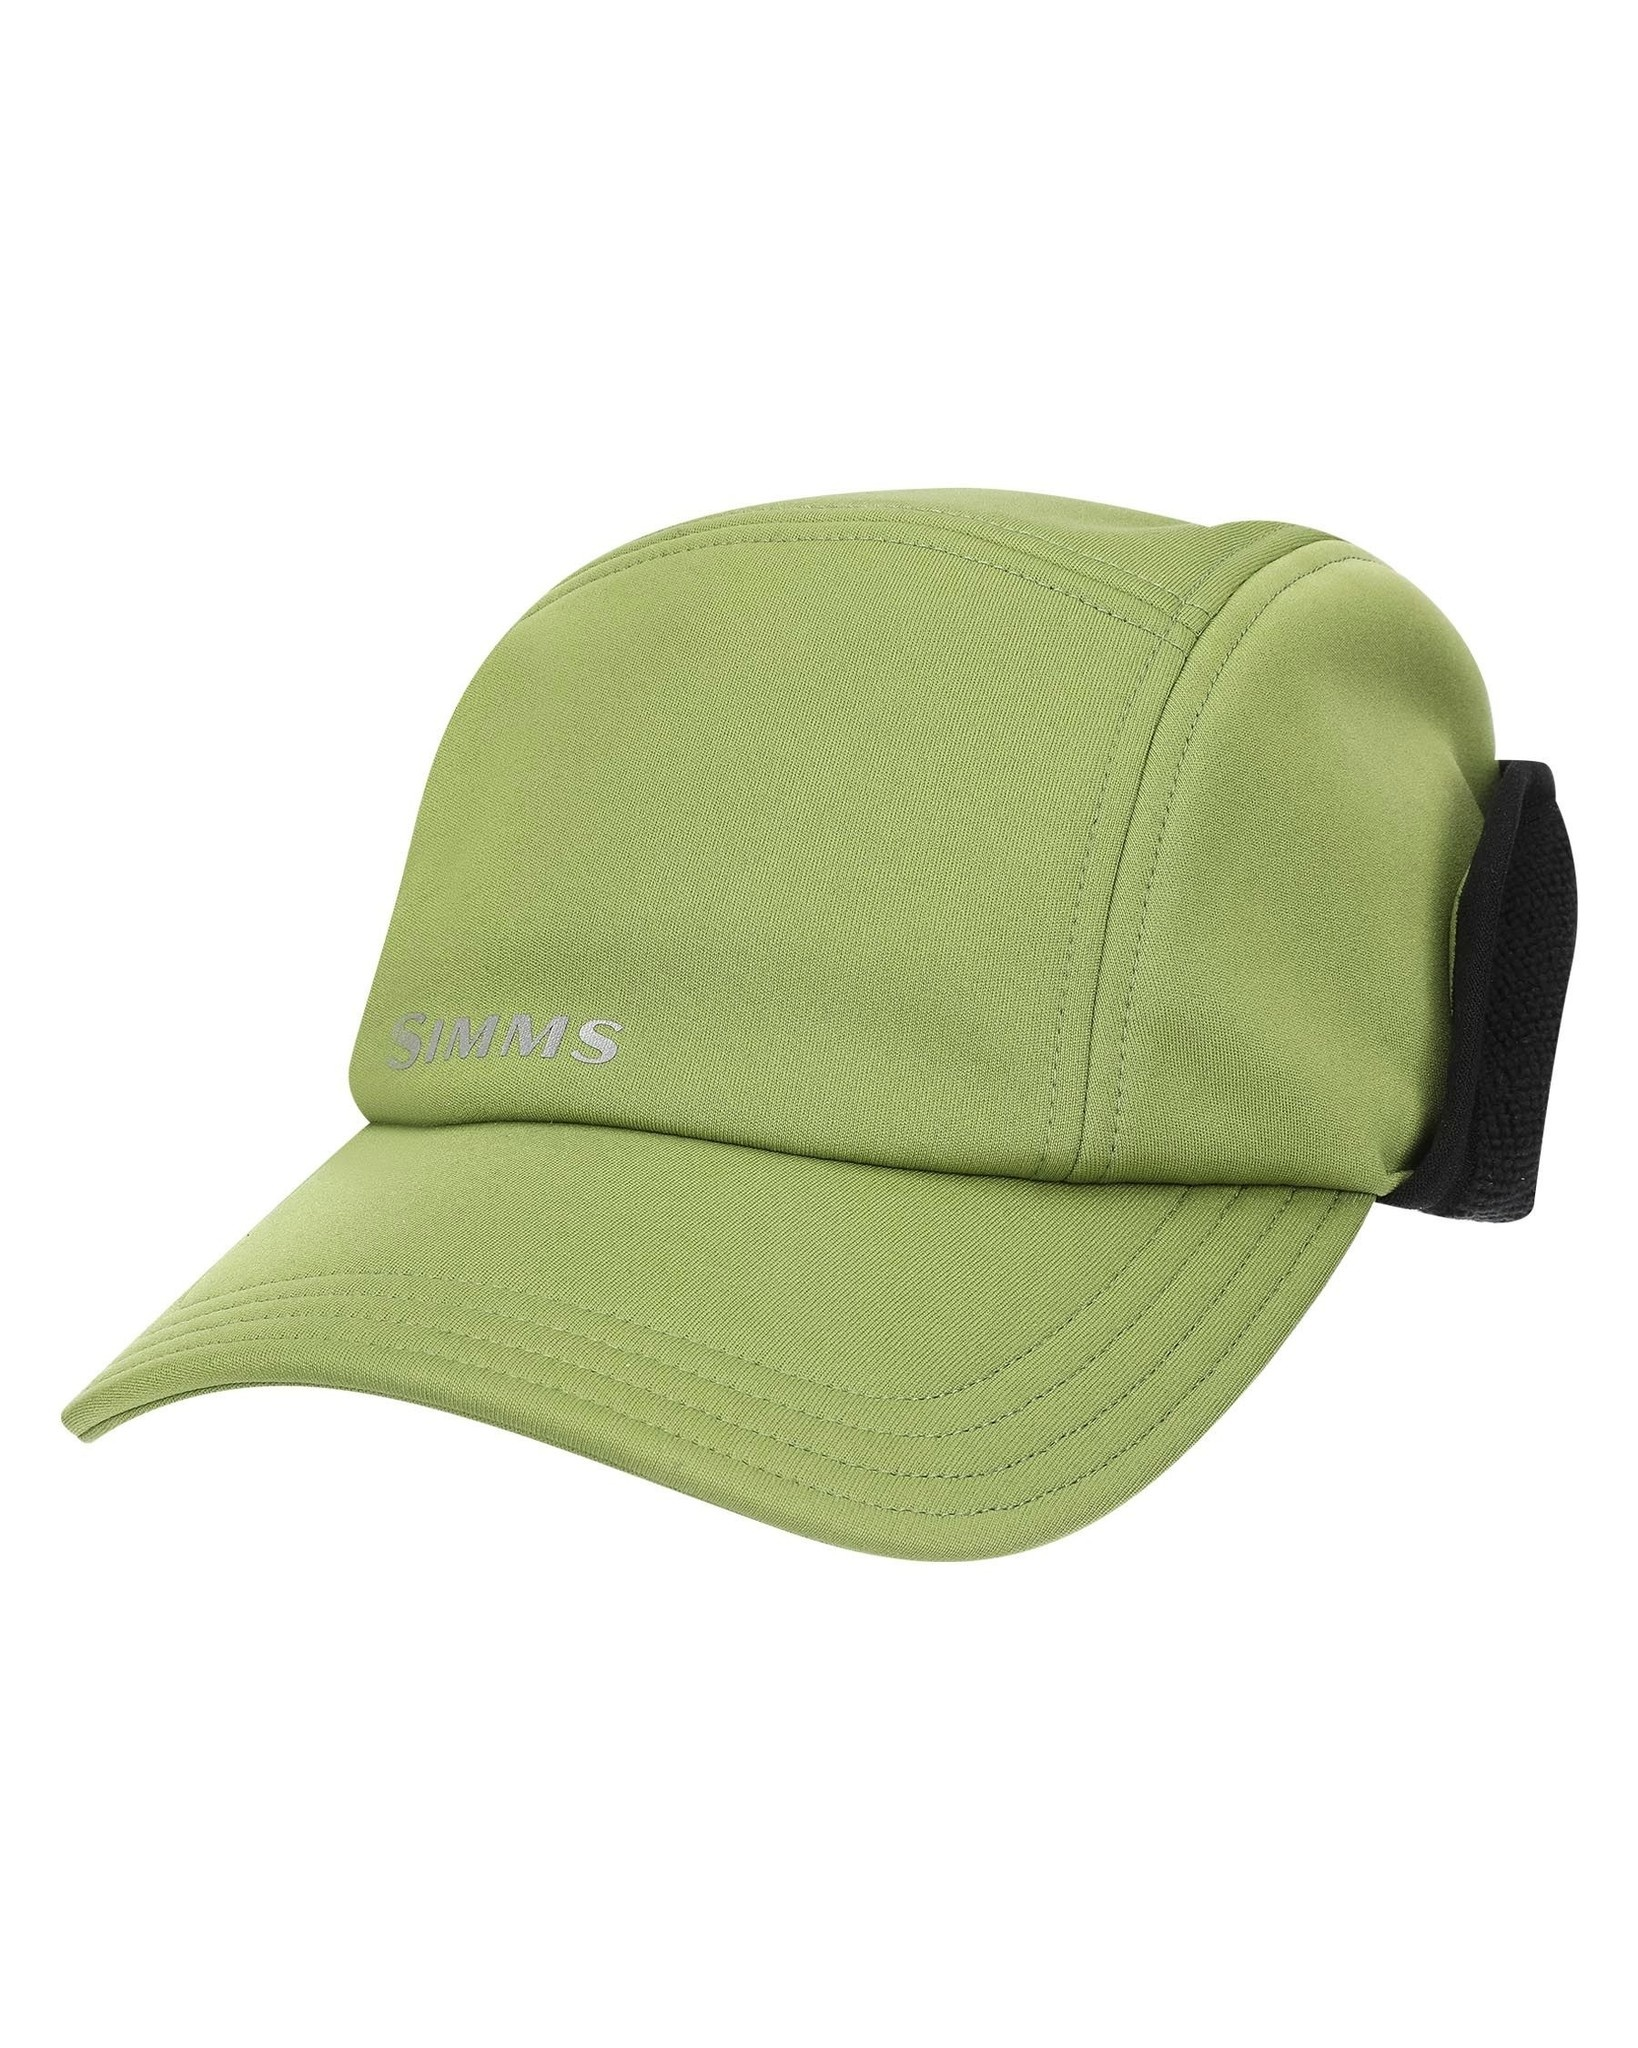 SIMMS GORE INFINIUM WIND CAP - ON SALE!